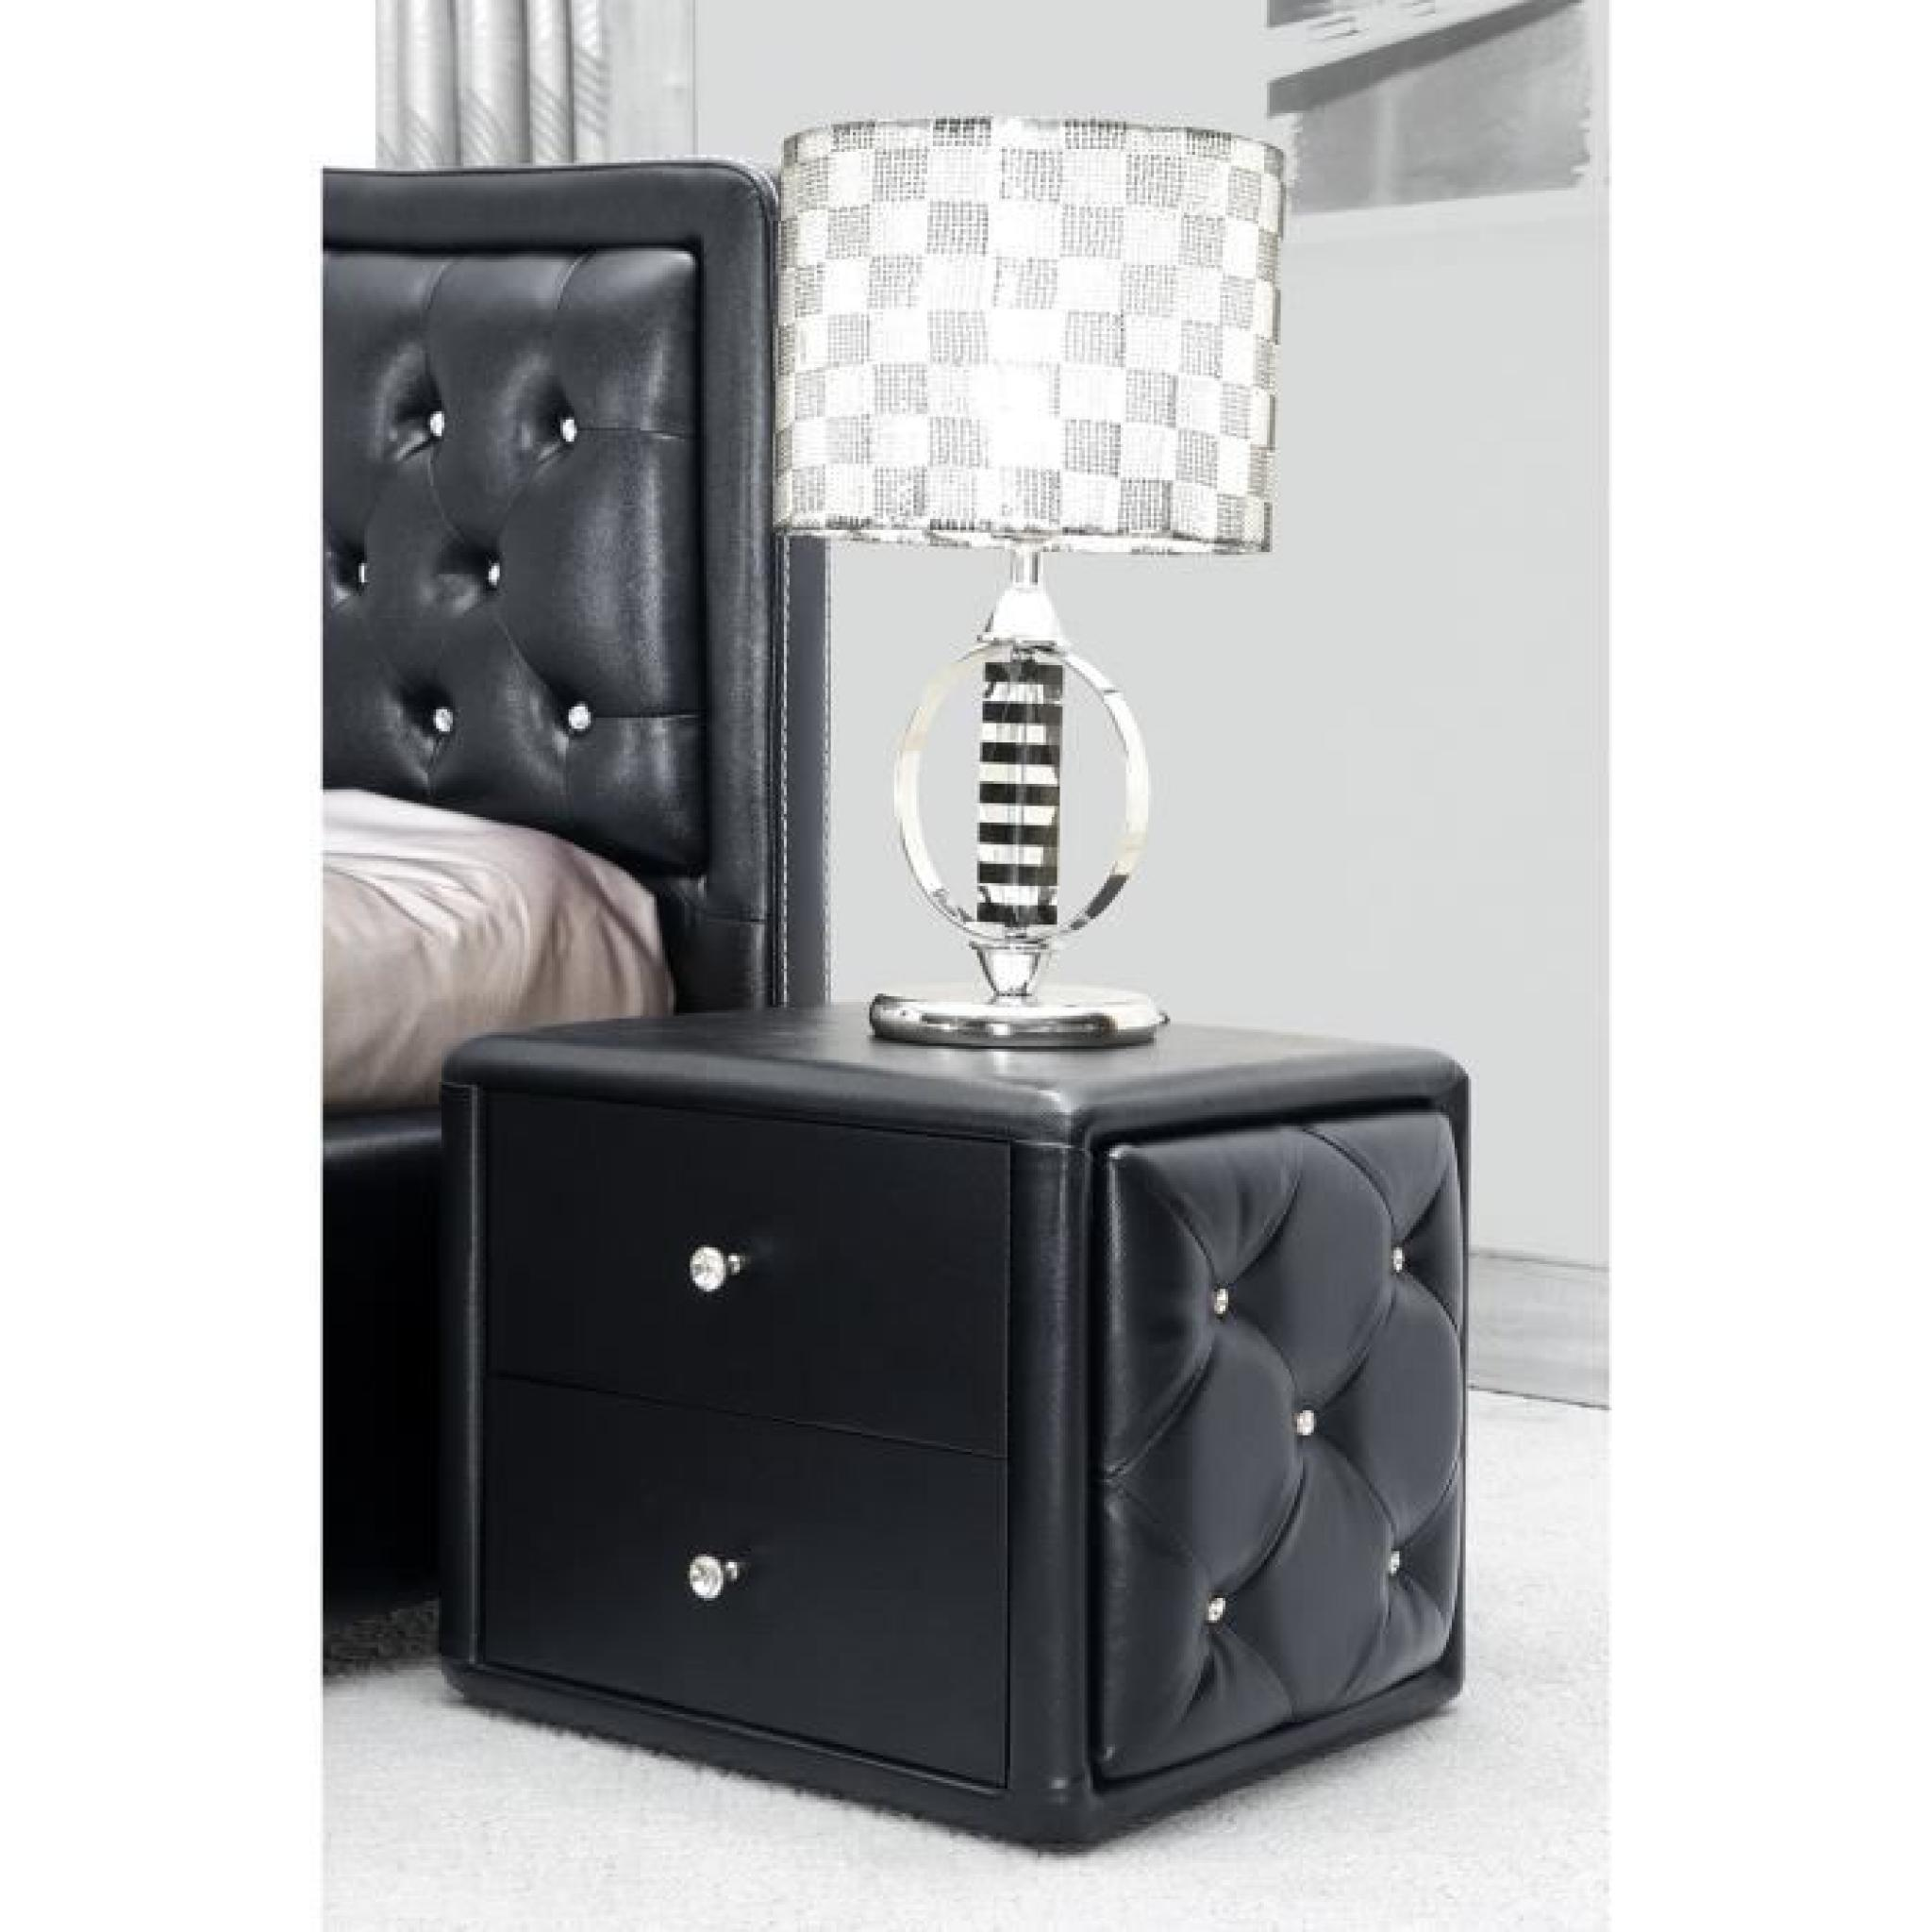 table de nuit noire capitonn e de strass achat vente table de chevet pas cher couleur et. Black Bedroom Furniture Sets. Home Design Ideas